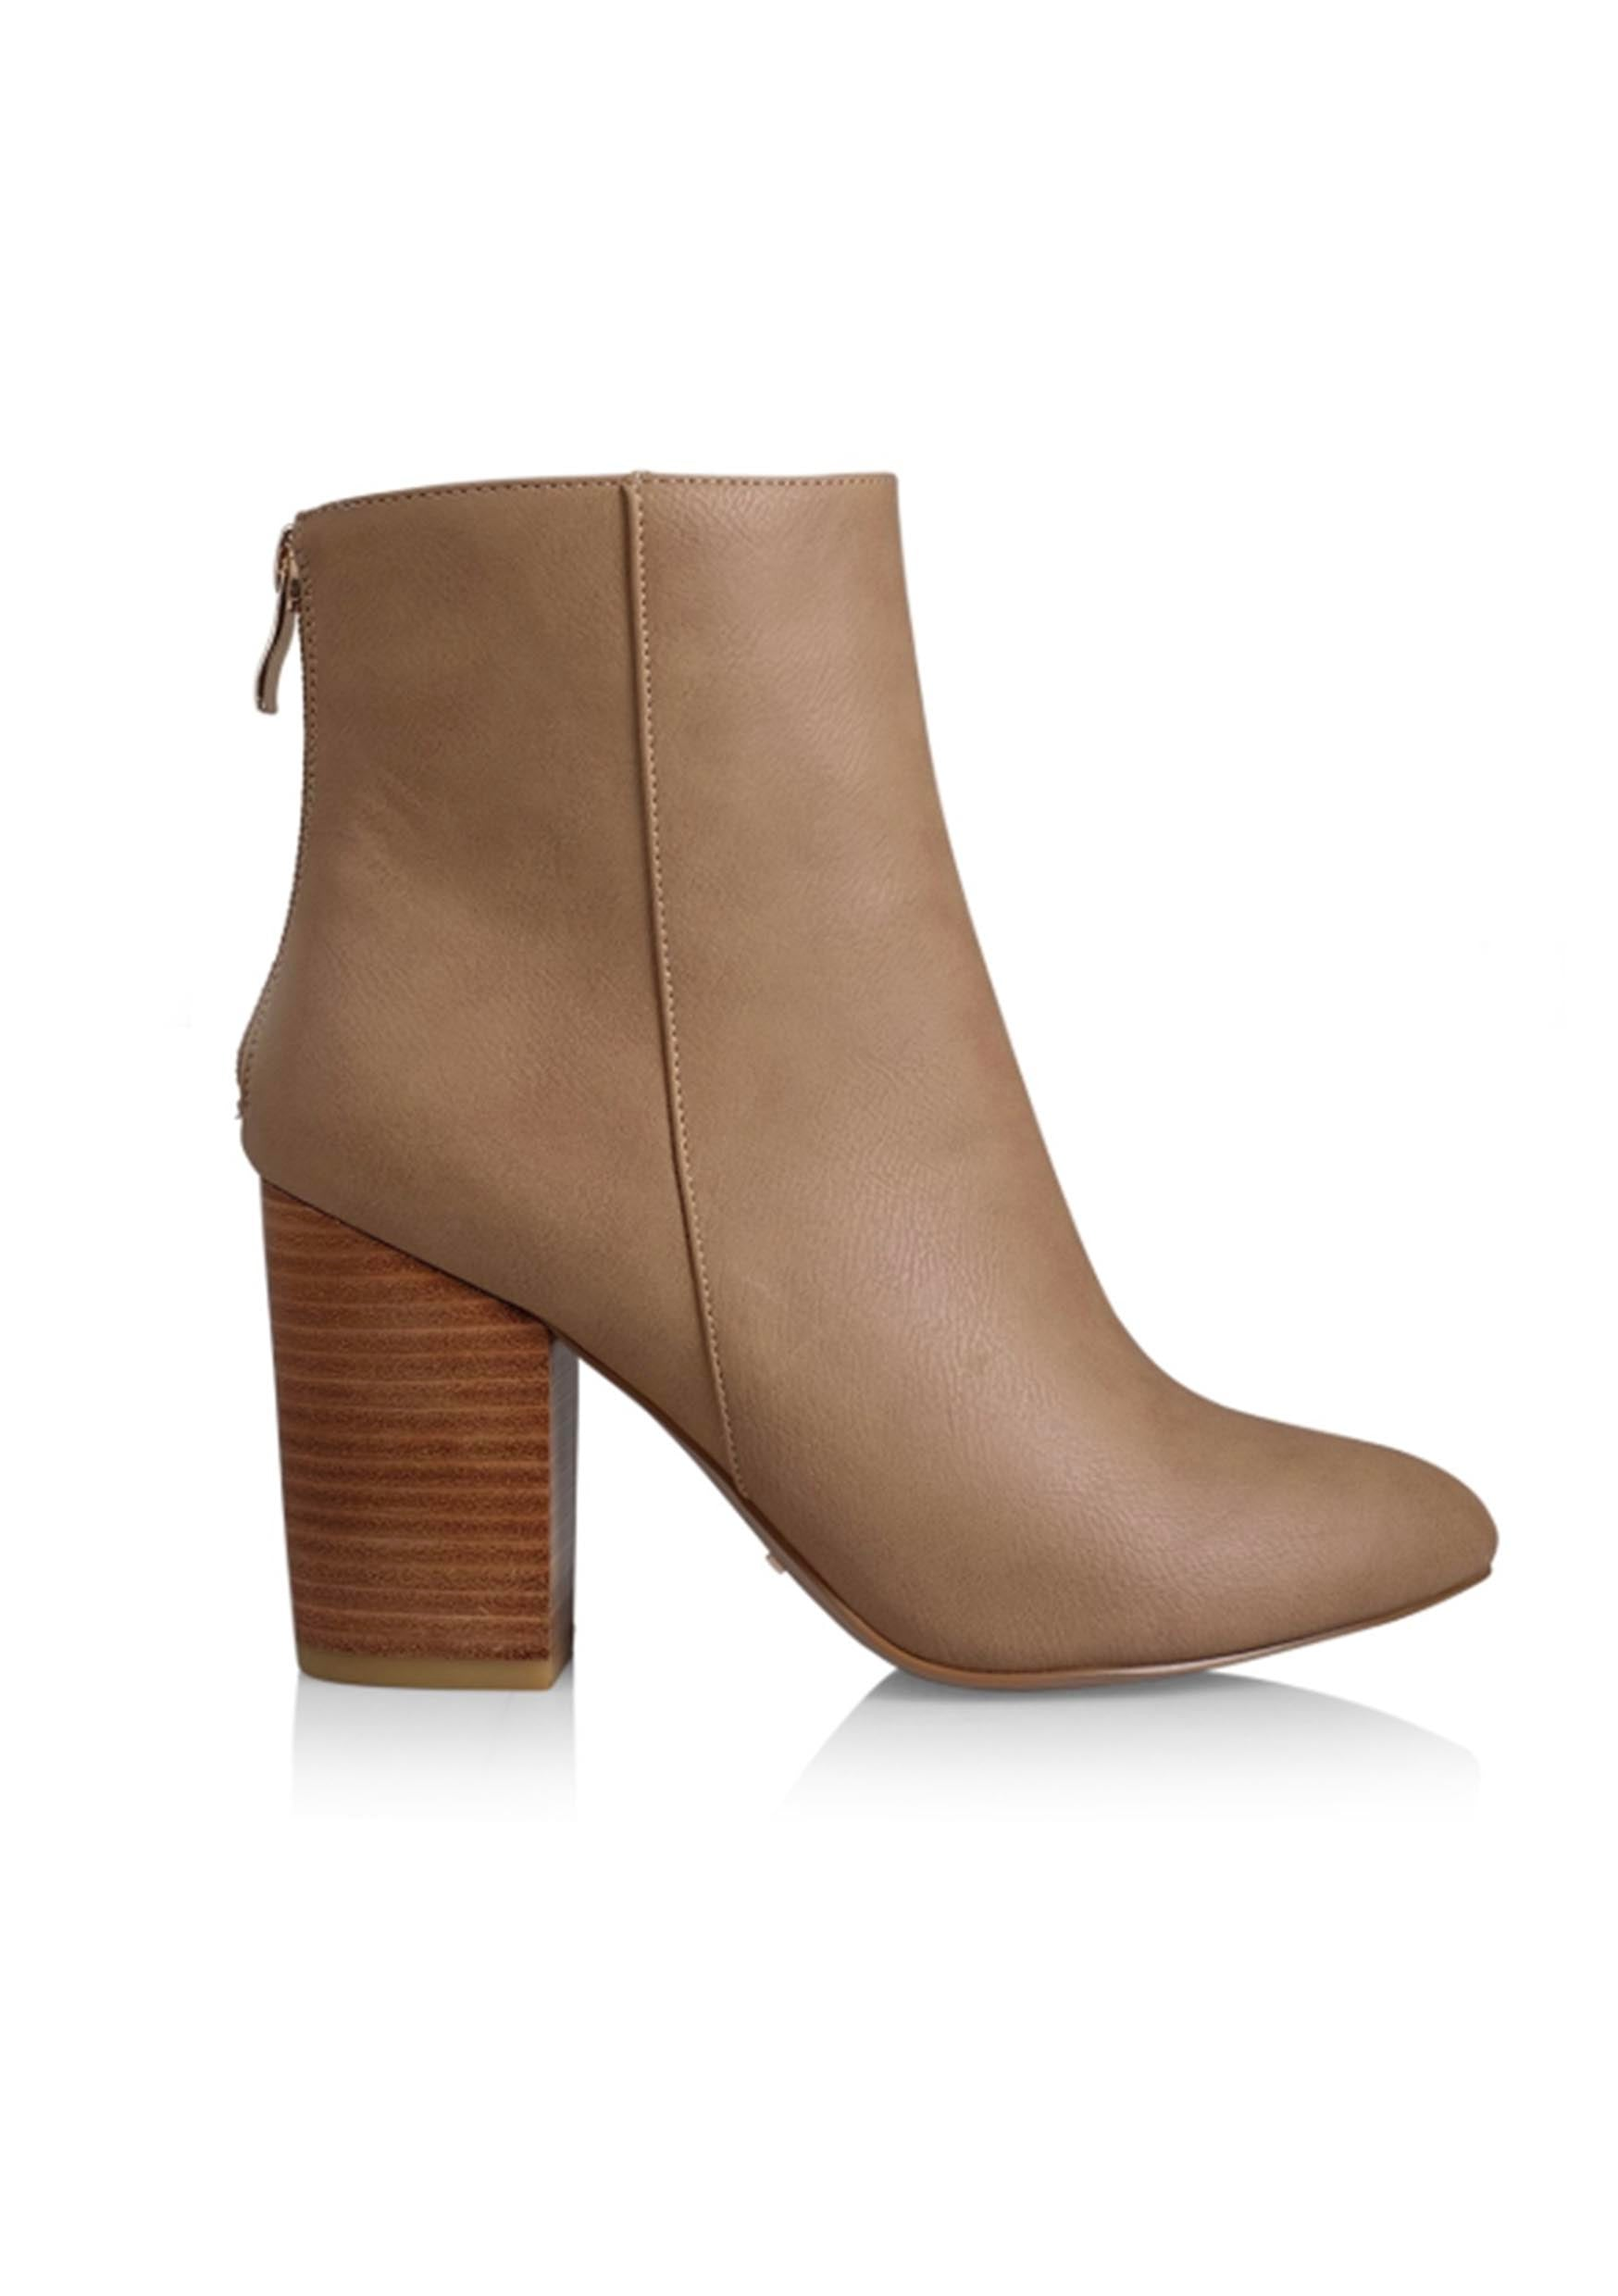 Billini - Marion Boots - Light Camel